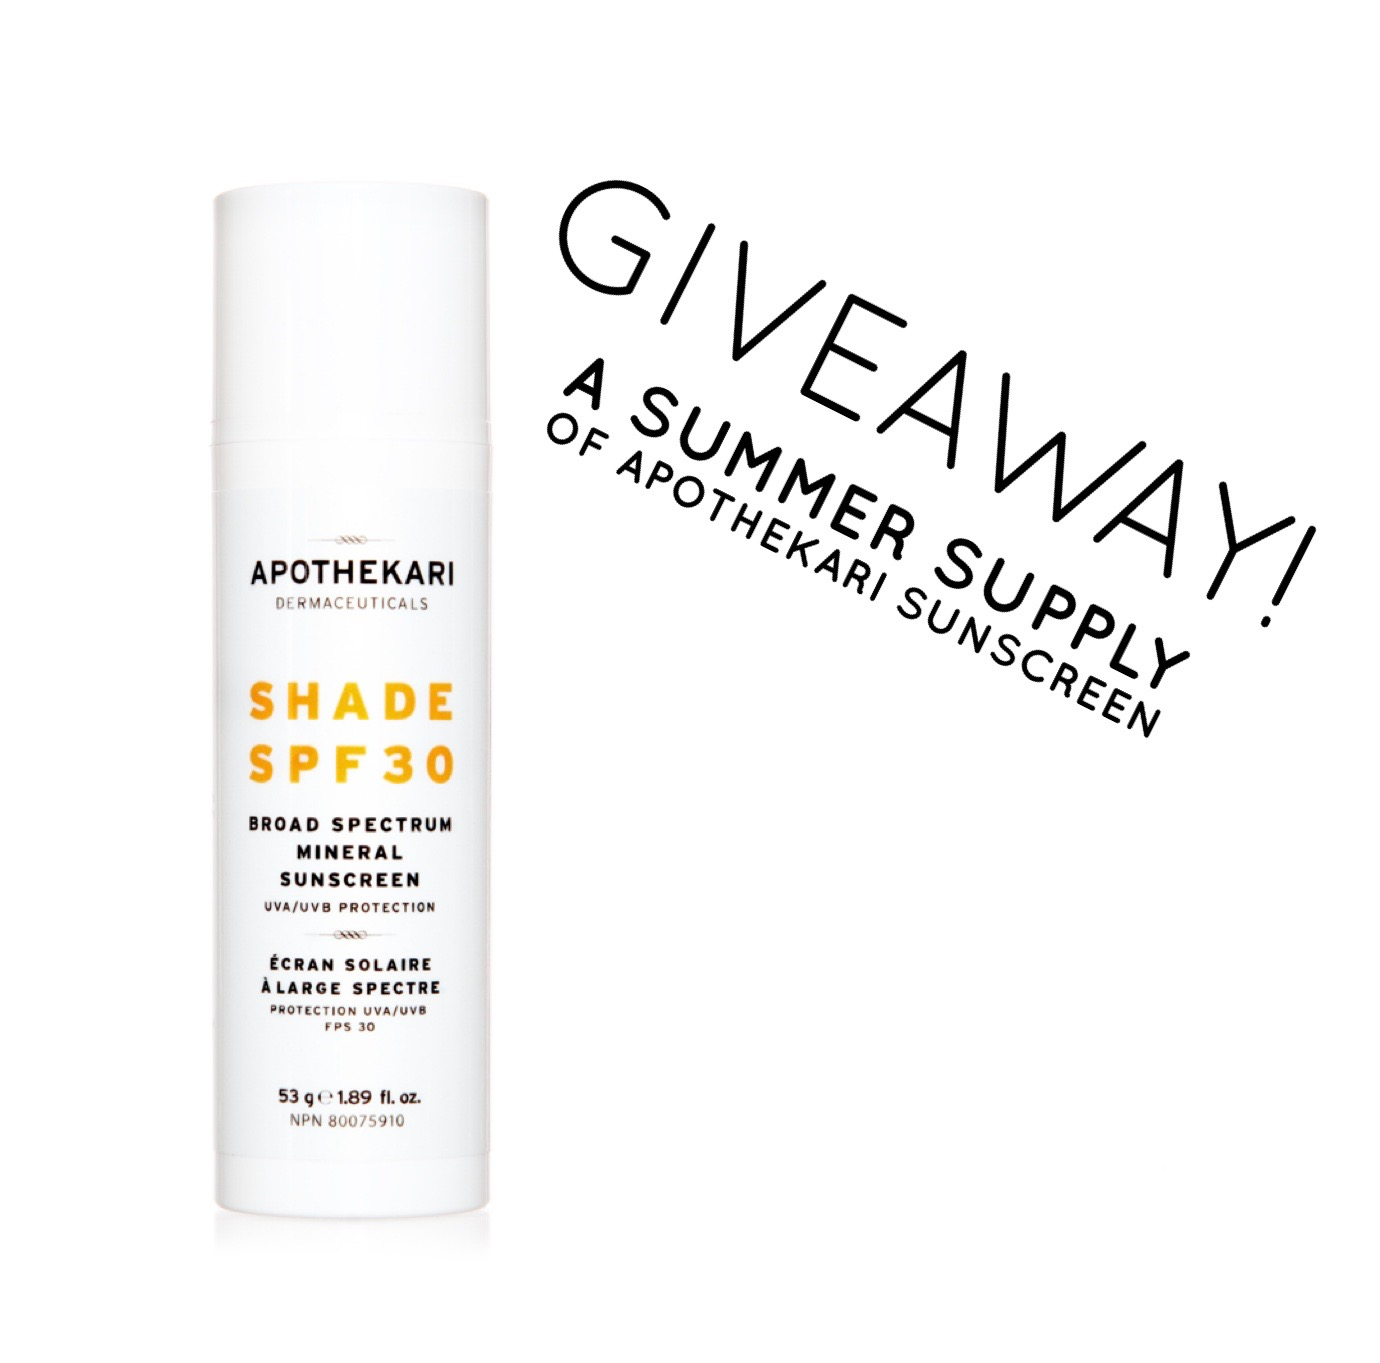 Apothekari Shade SPF 30 Sunscreen Giveaway